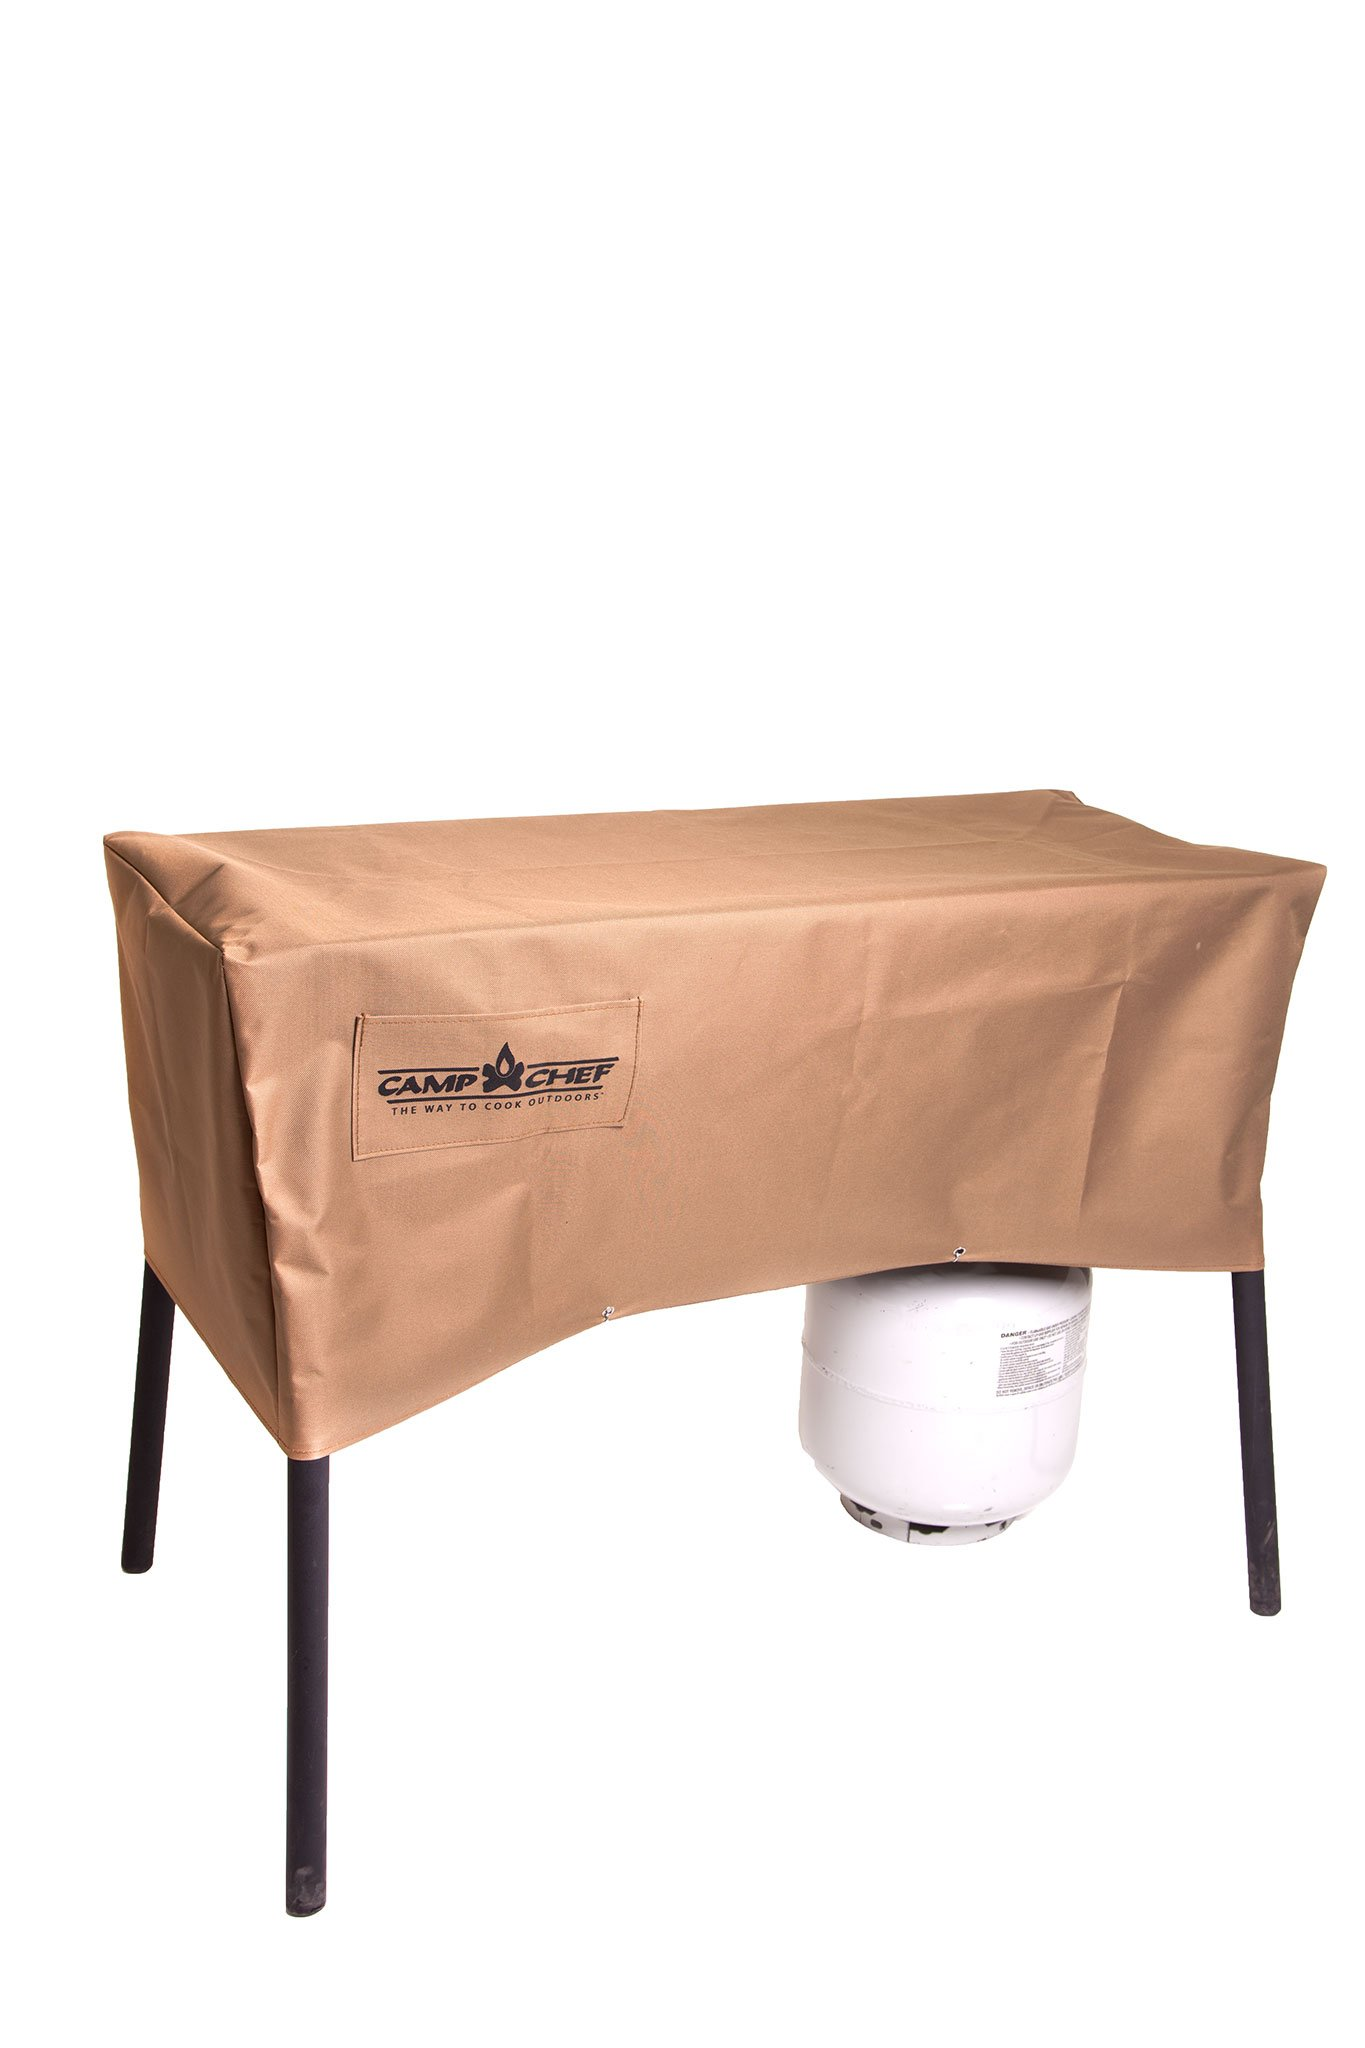 Camp Chef PC42 Stove Patio Cover Fits Models TB90LW, TB90LWG, TB90LWG15,PRO90, SPG90B by Camp Chef